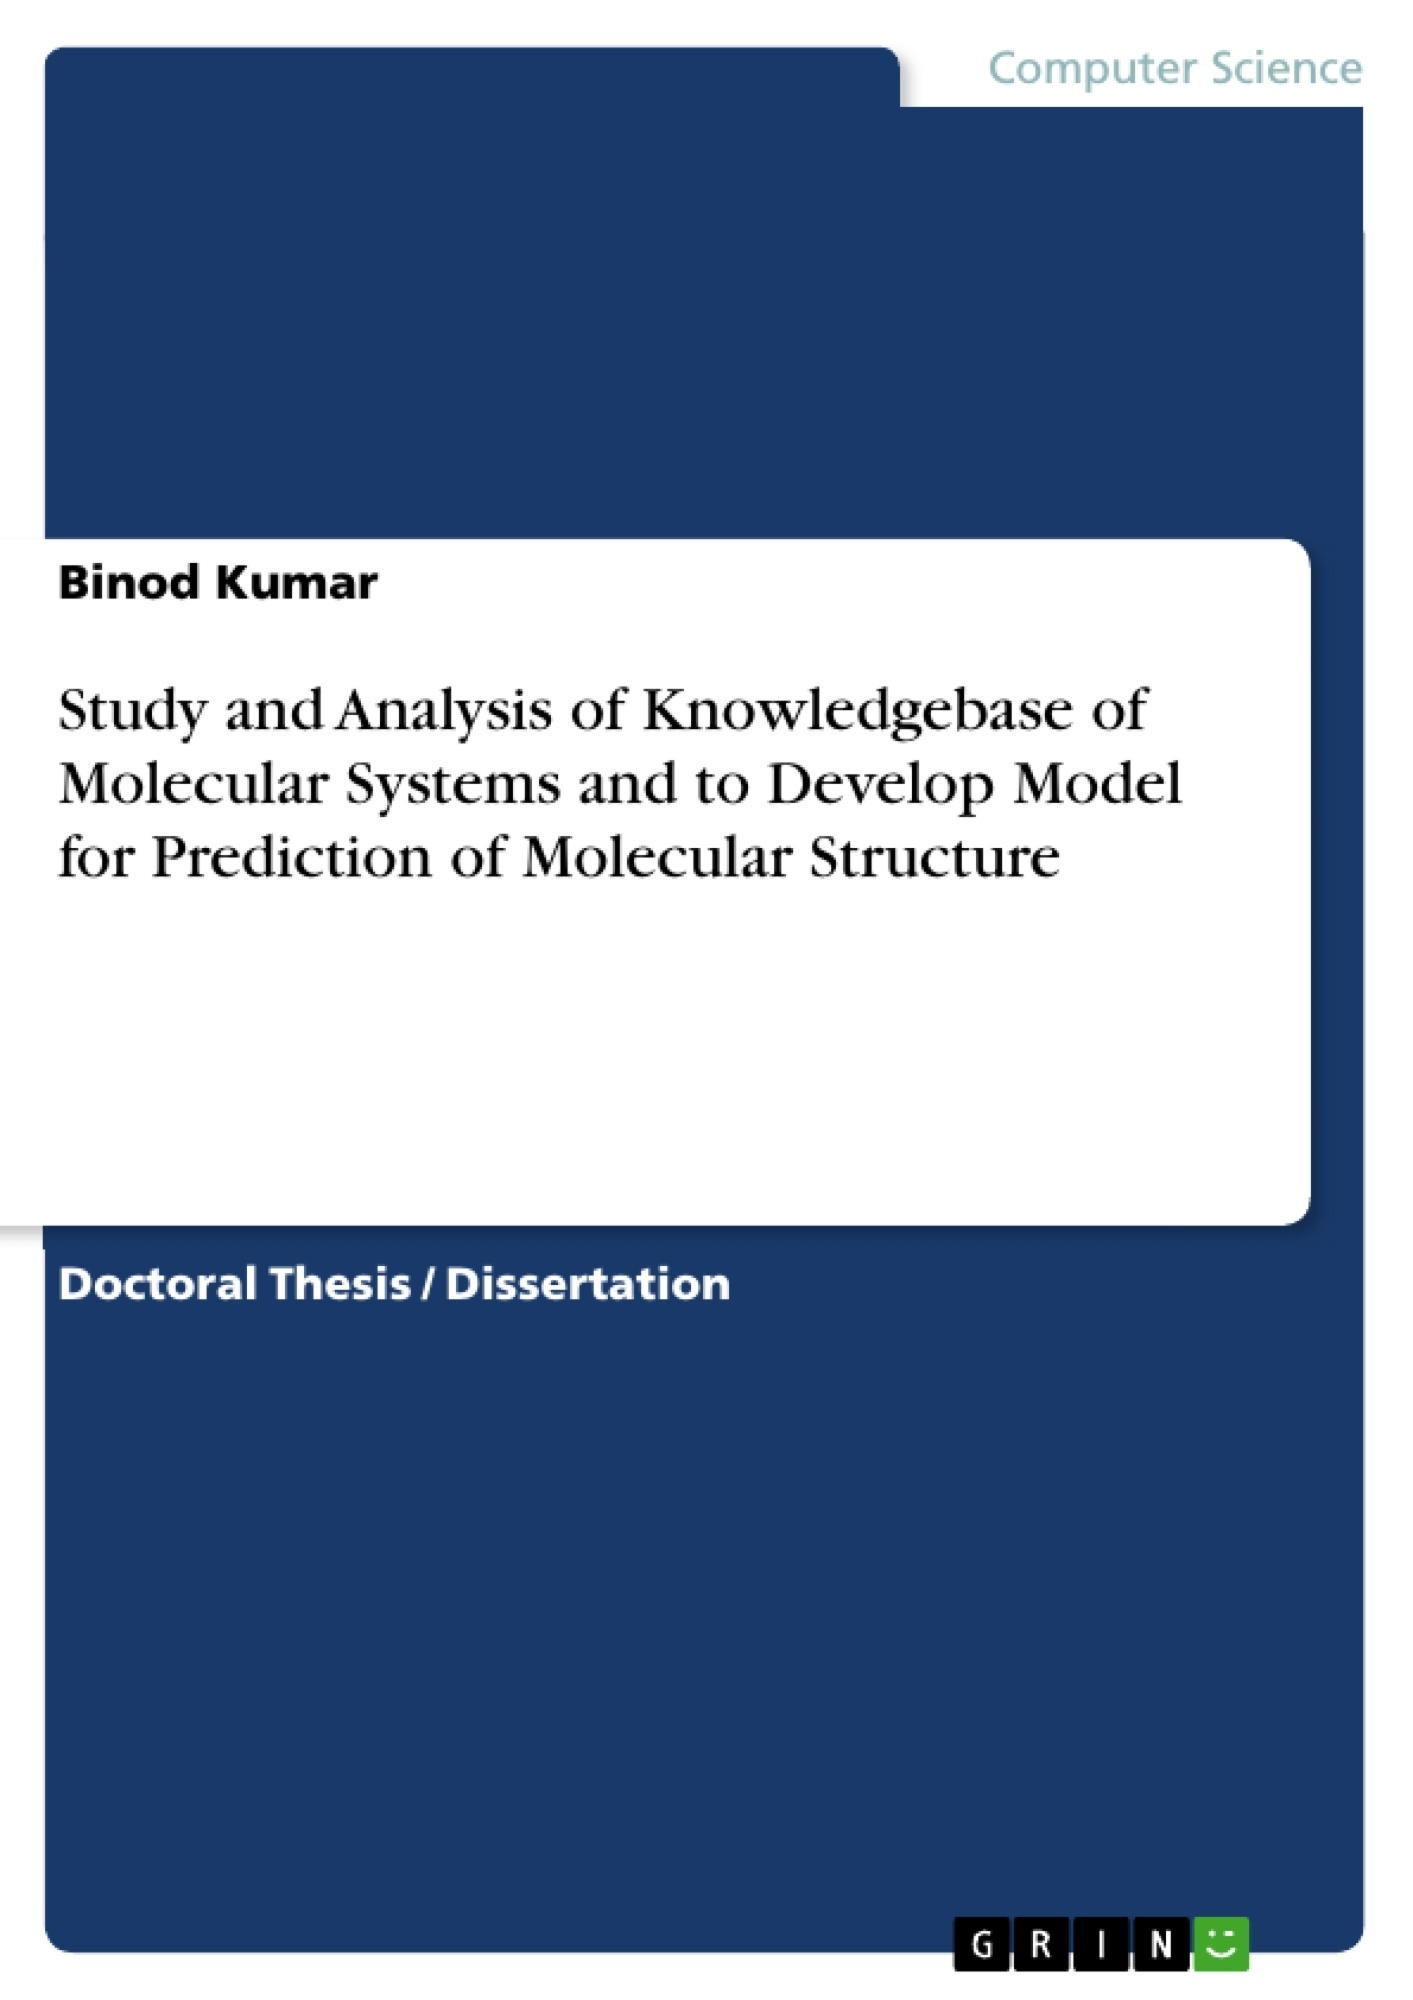 Title: Study and Analysis of Knowledgebase of Molecular Systems and to Develop Model for Prediction of Molecular Structure